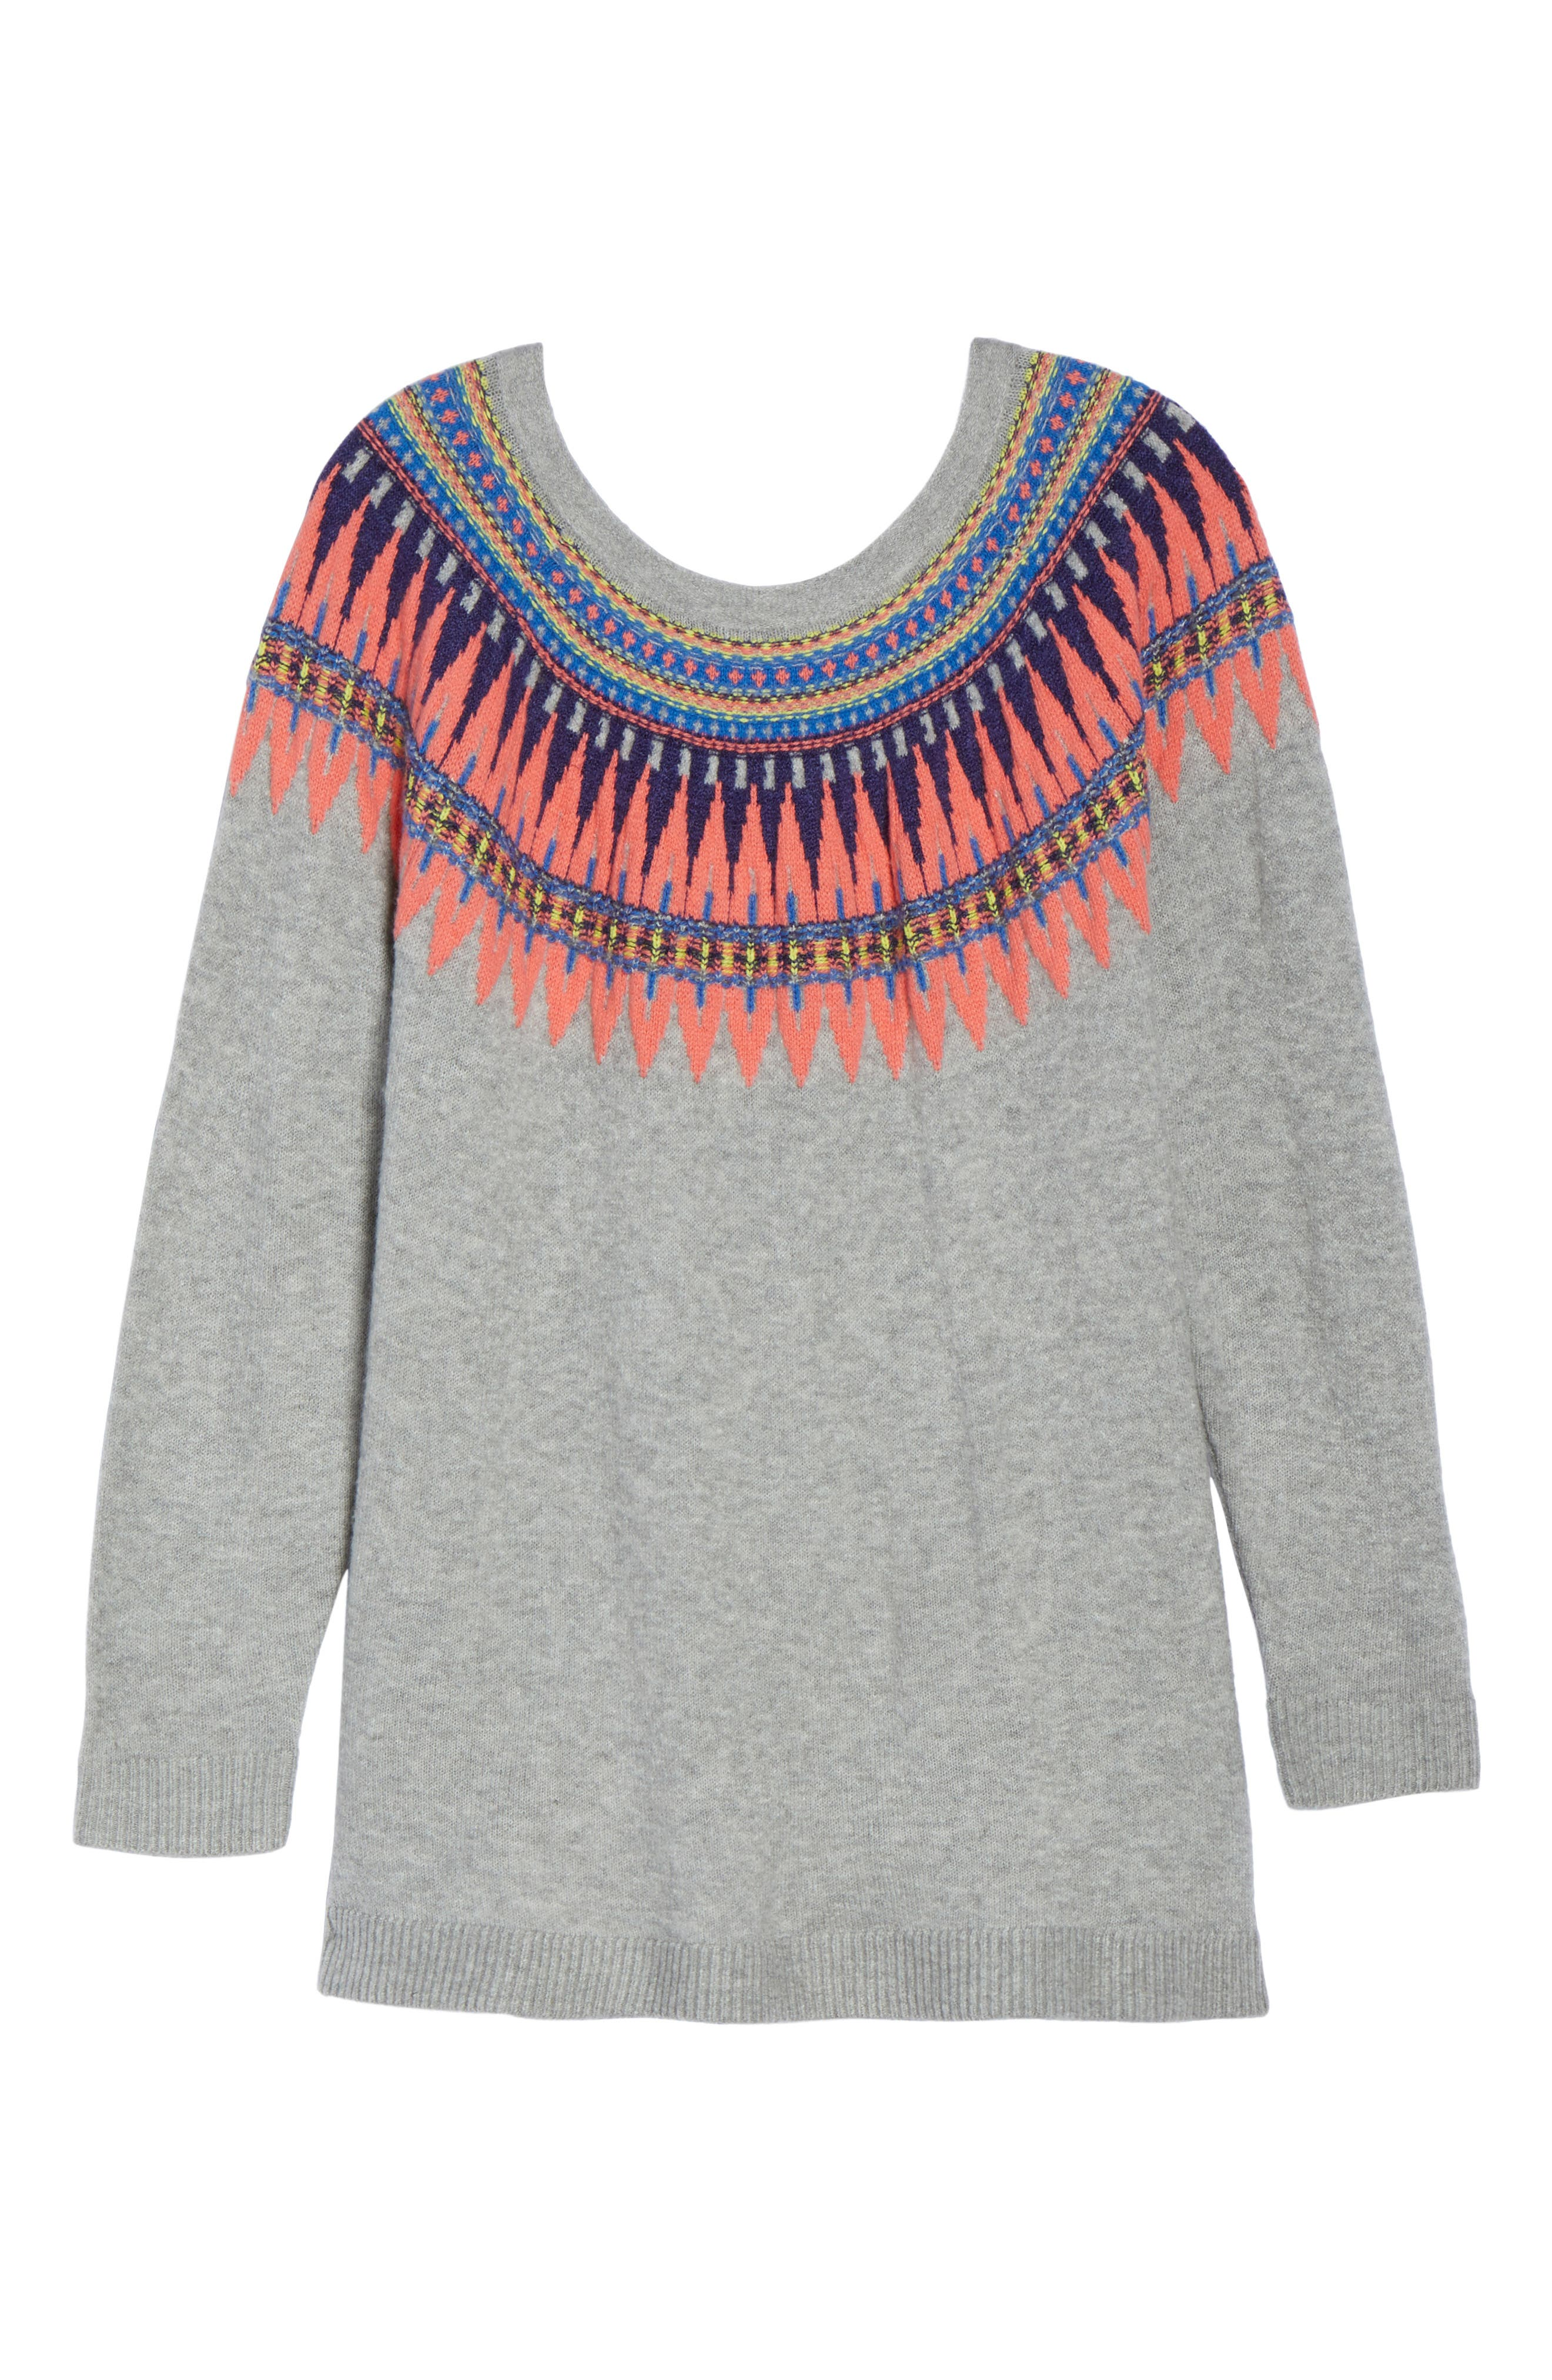 Tie Back Patterned Sweater,                             Alternate thumbnail 7, color,                             Grey- Pink Pattern